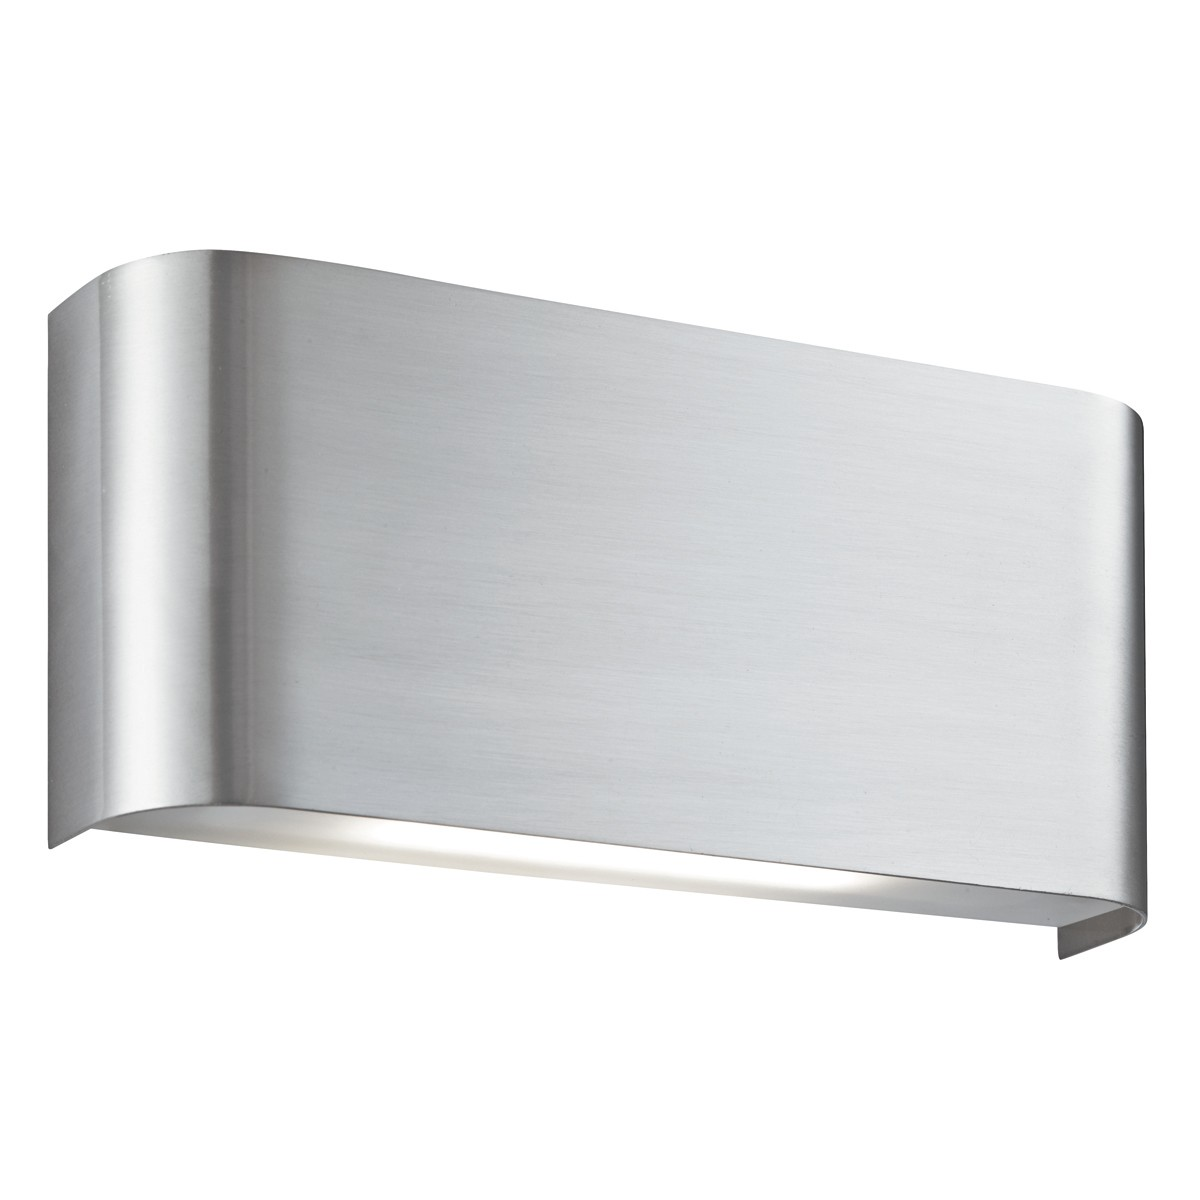 Satin silver 20 led oblong curved wall light with up for Curved wall